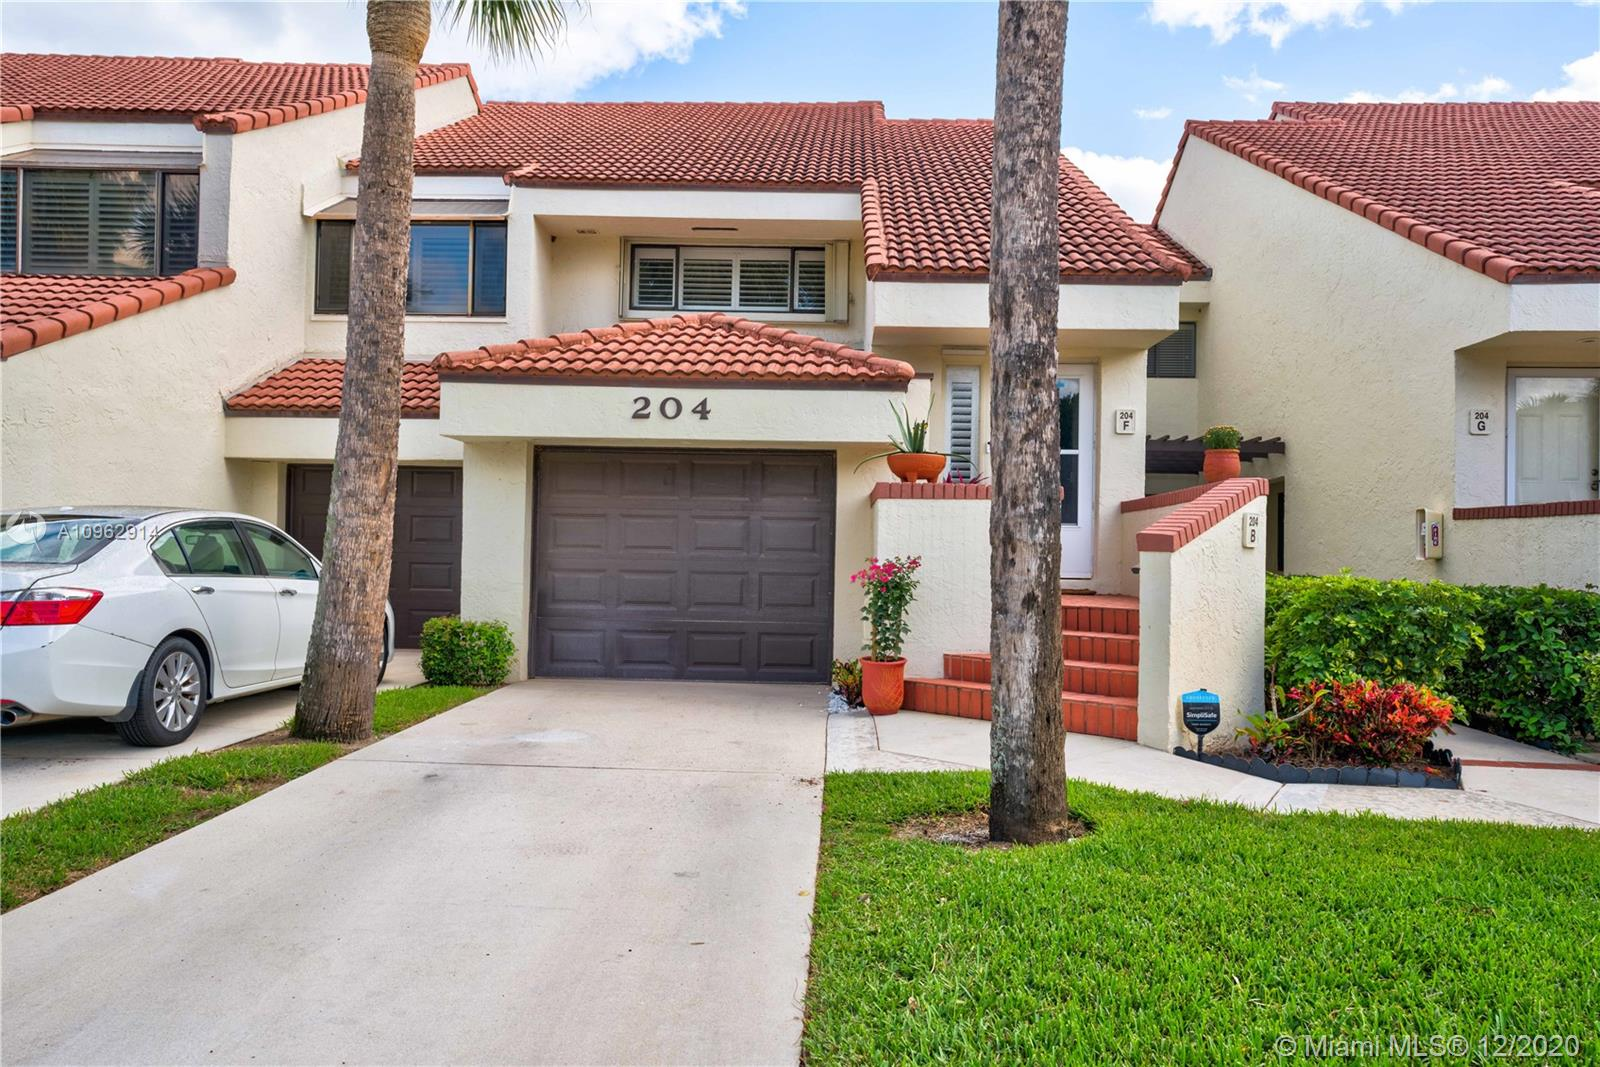 204 Sea Oats Dr # F, Juno Beach, Florida 33408, 2 Bedrooms Bedrooms, ,2 BathroomsBathrooms,Residential Lease,For Rent,204 Sea Oats Dr # F,A10962914